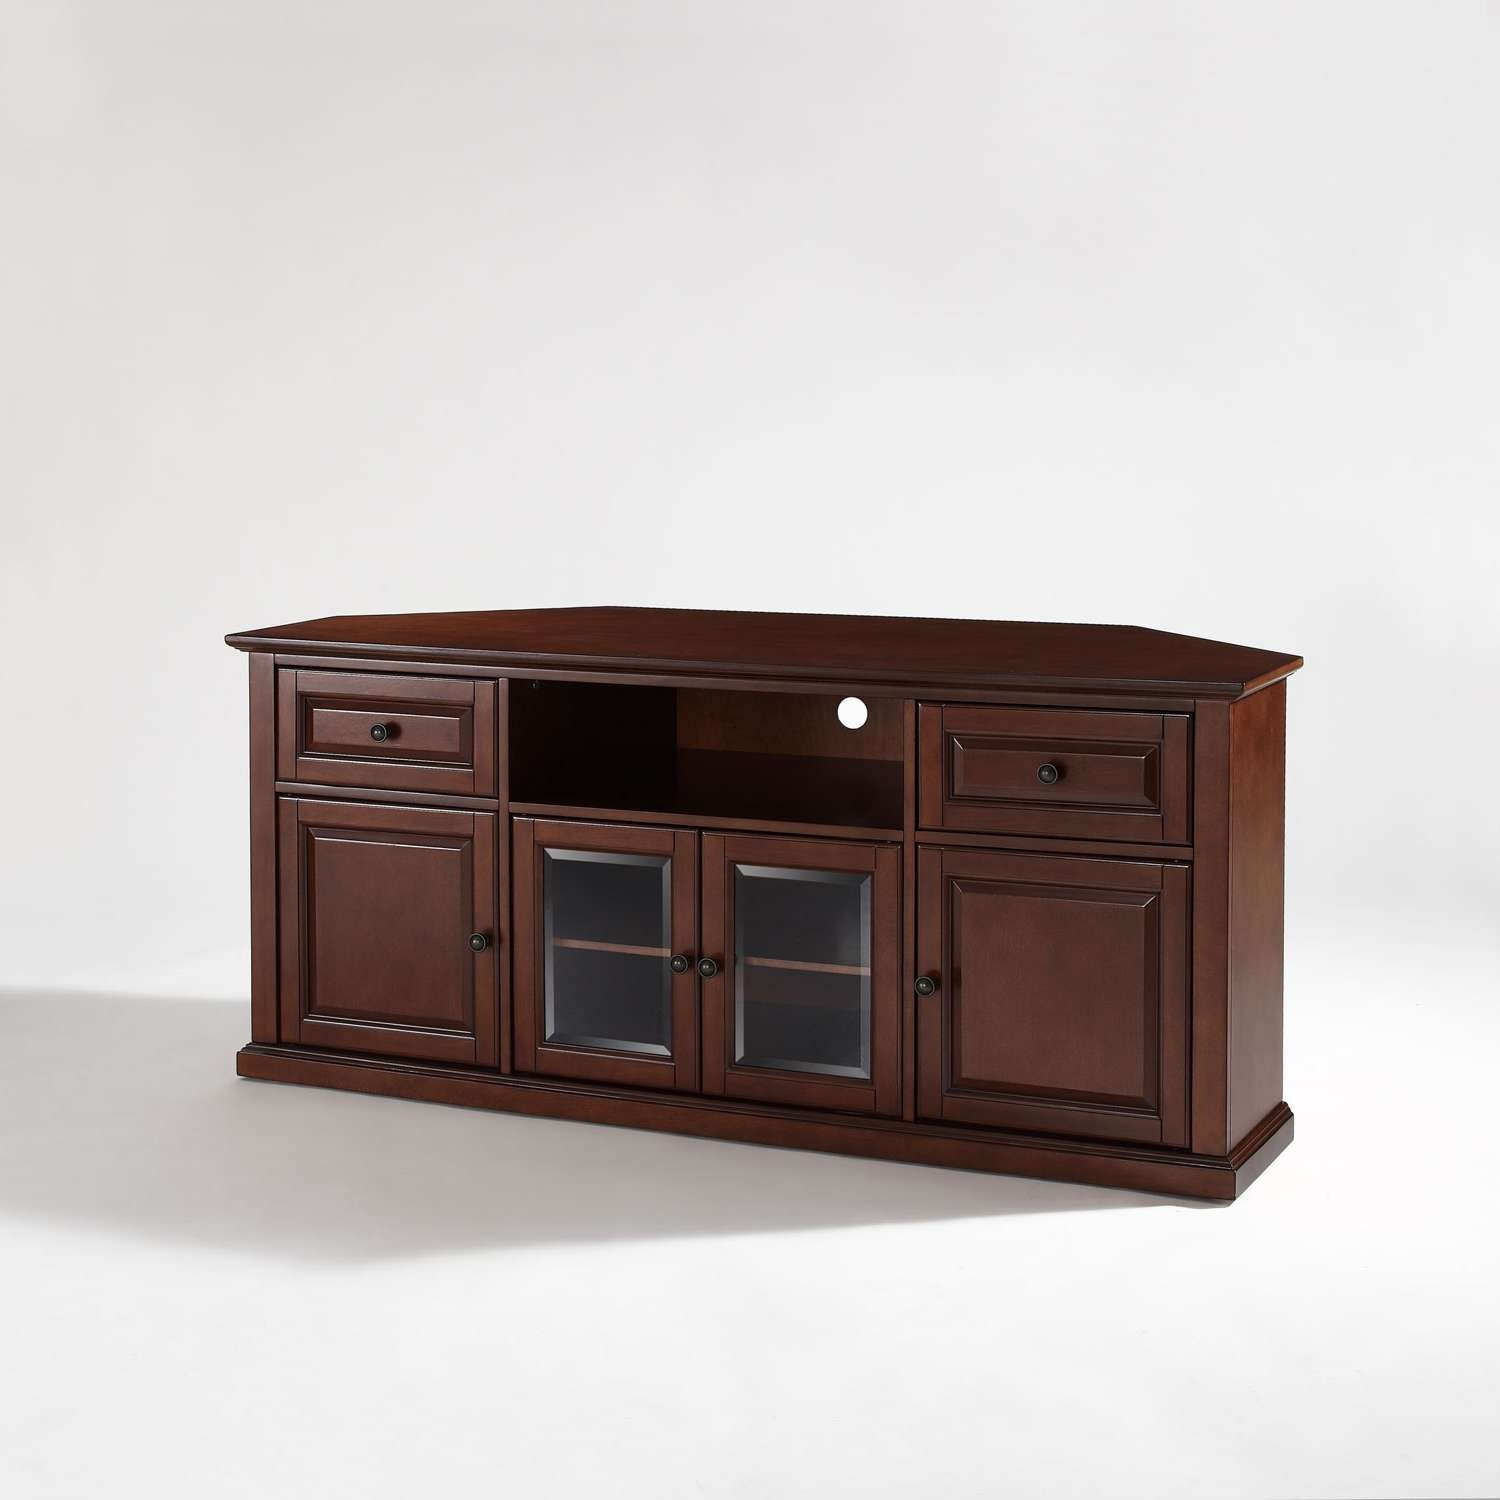 60 Inch Corner Tv Stand In Vintage Mahogany Crosley Furniture Pertaining To Mahogany Tv Stands (View 1 of 15)